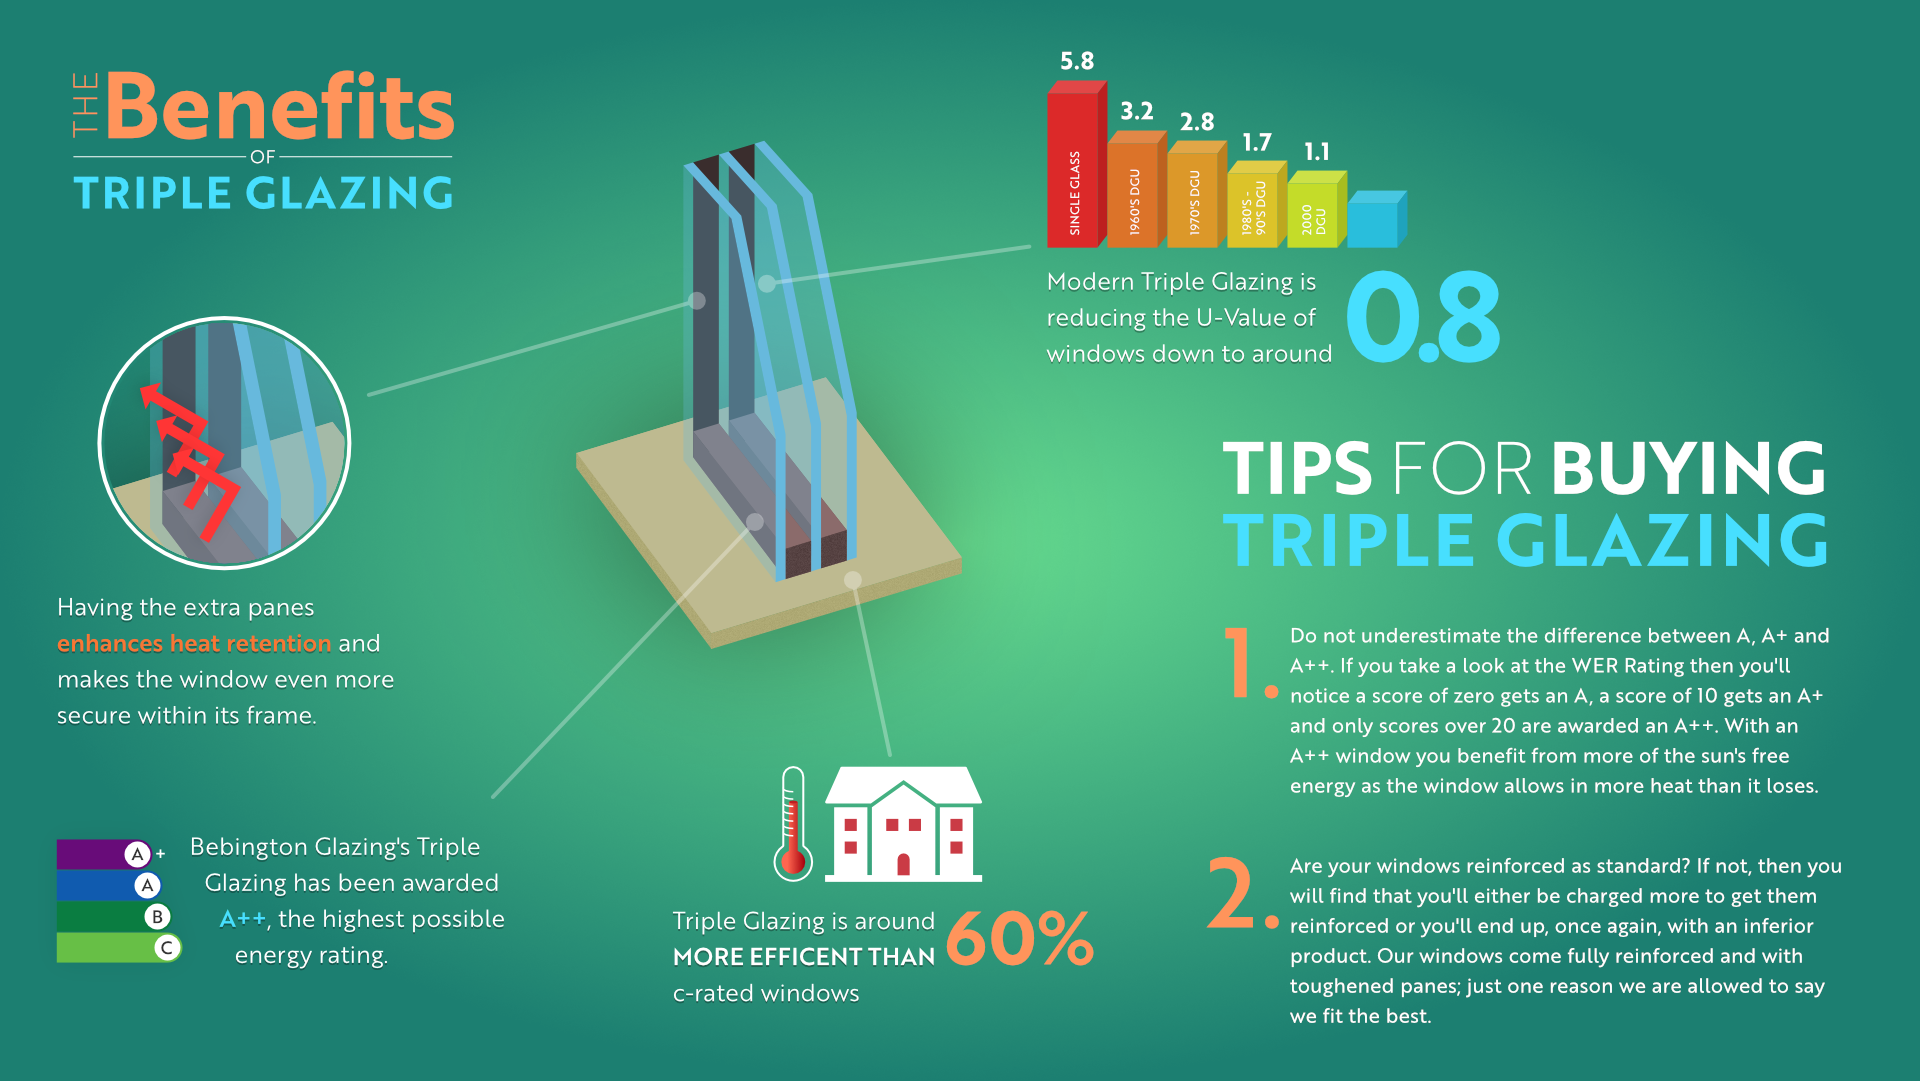 The benefits of triple glazing infographic commercial for Triple glazing